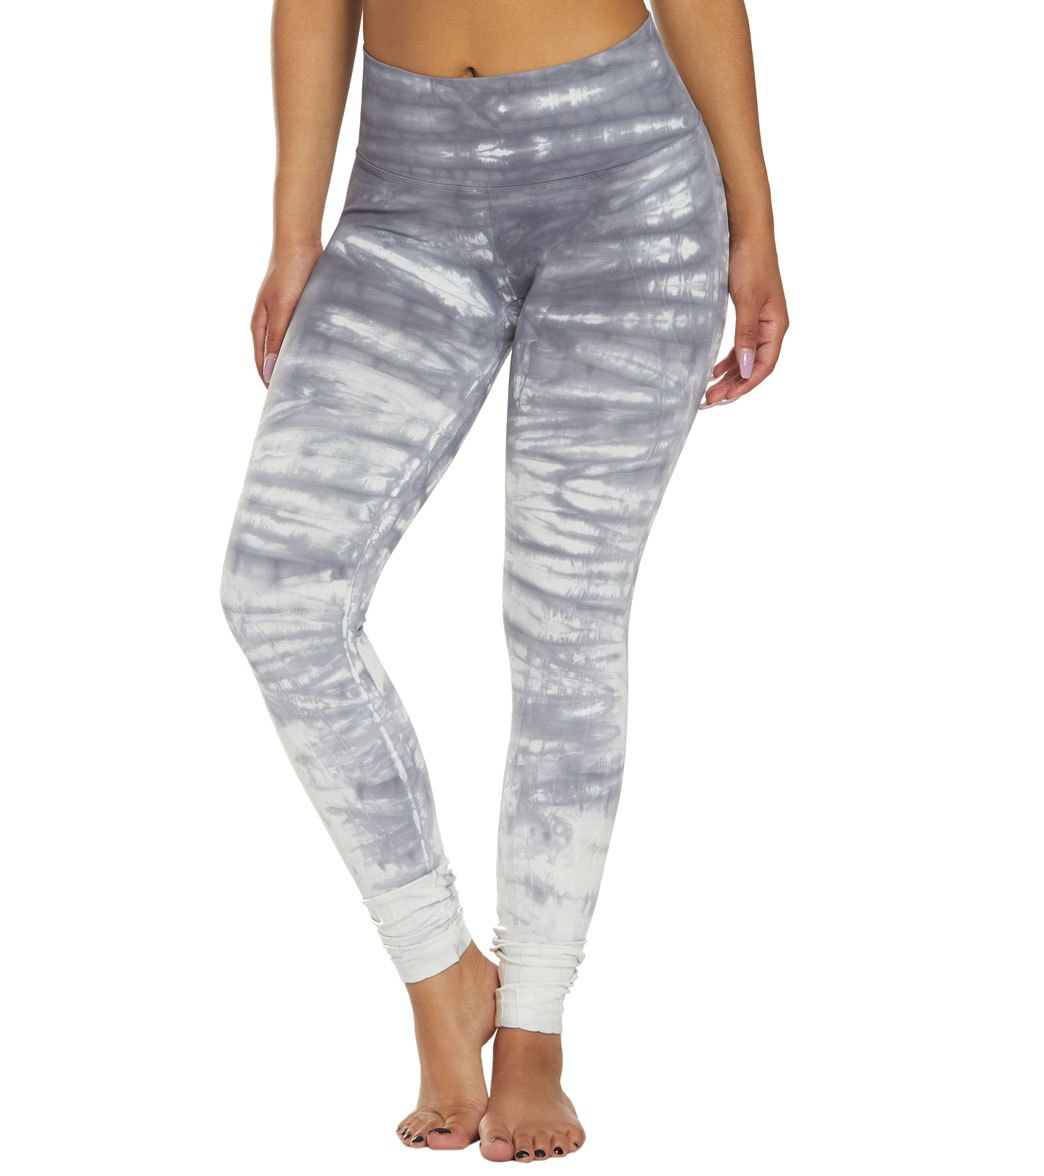 NUX Mesa Hand Dyed Seamless Yoga Leggings - Slate Waterfall Spandex